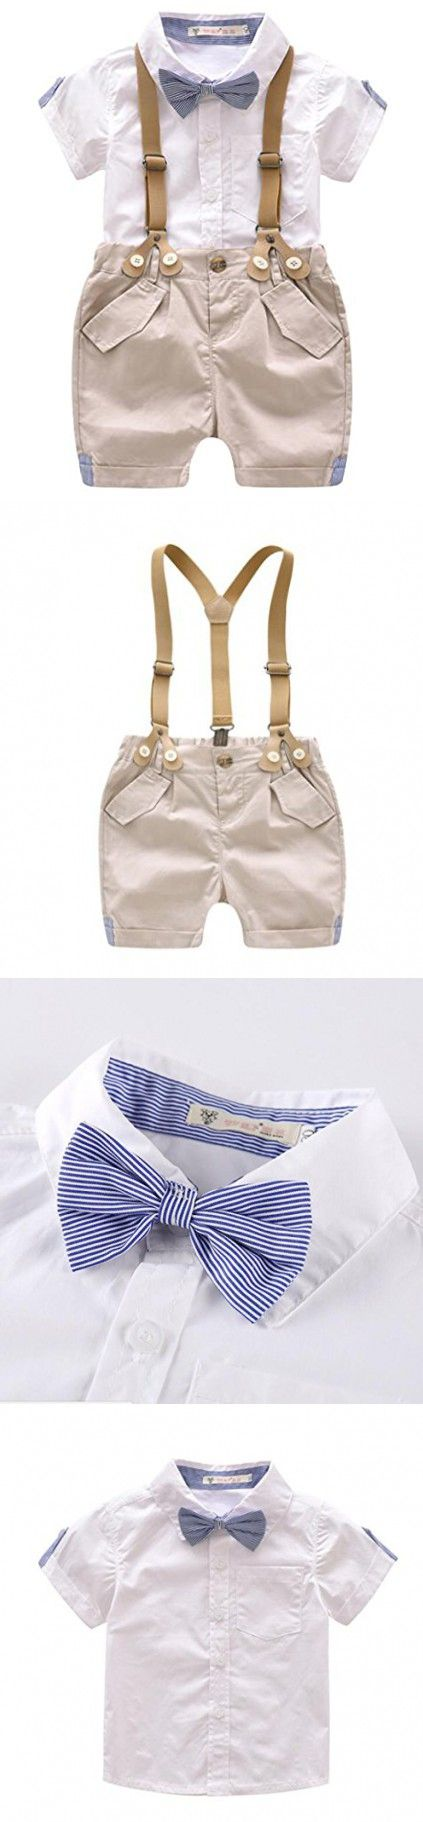 Baby Boys Cotton Gentleman Bowtie Short Sleeve Shirt Overalls Shorts Outfits Set size 9-12 Months (White)